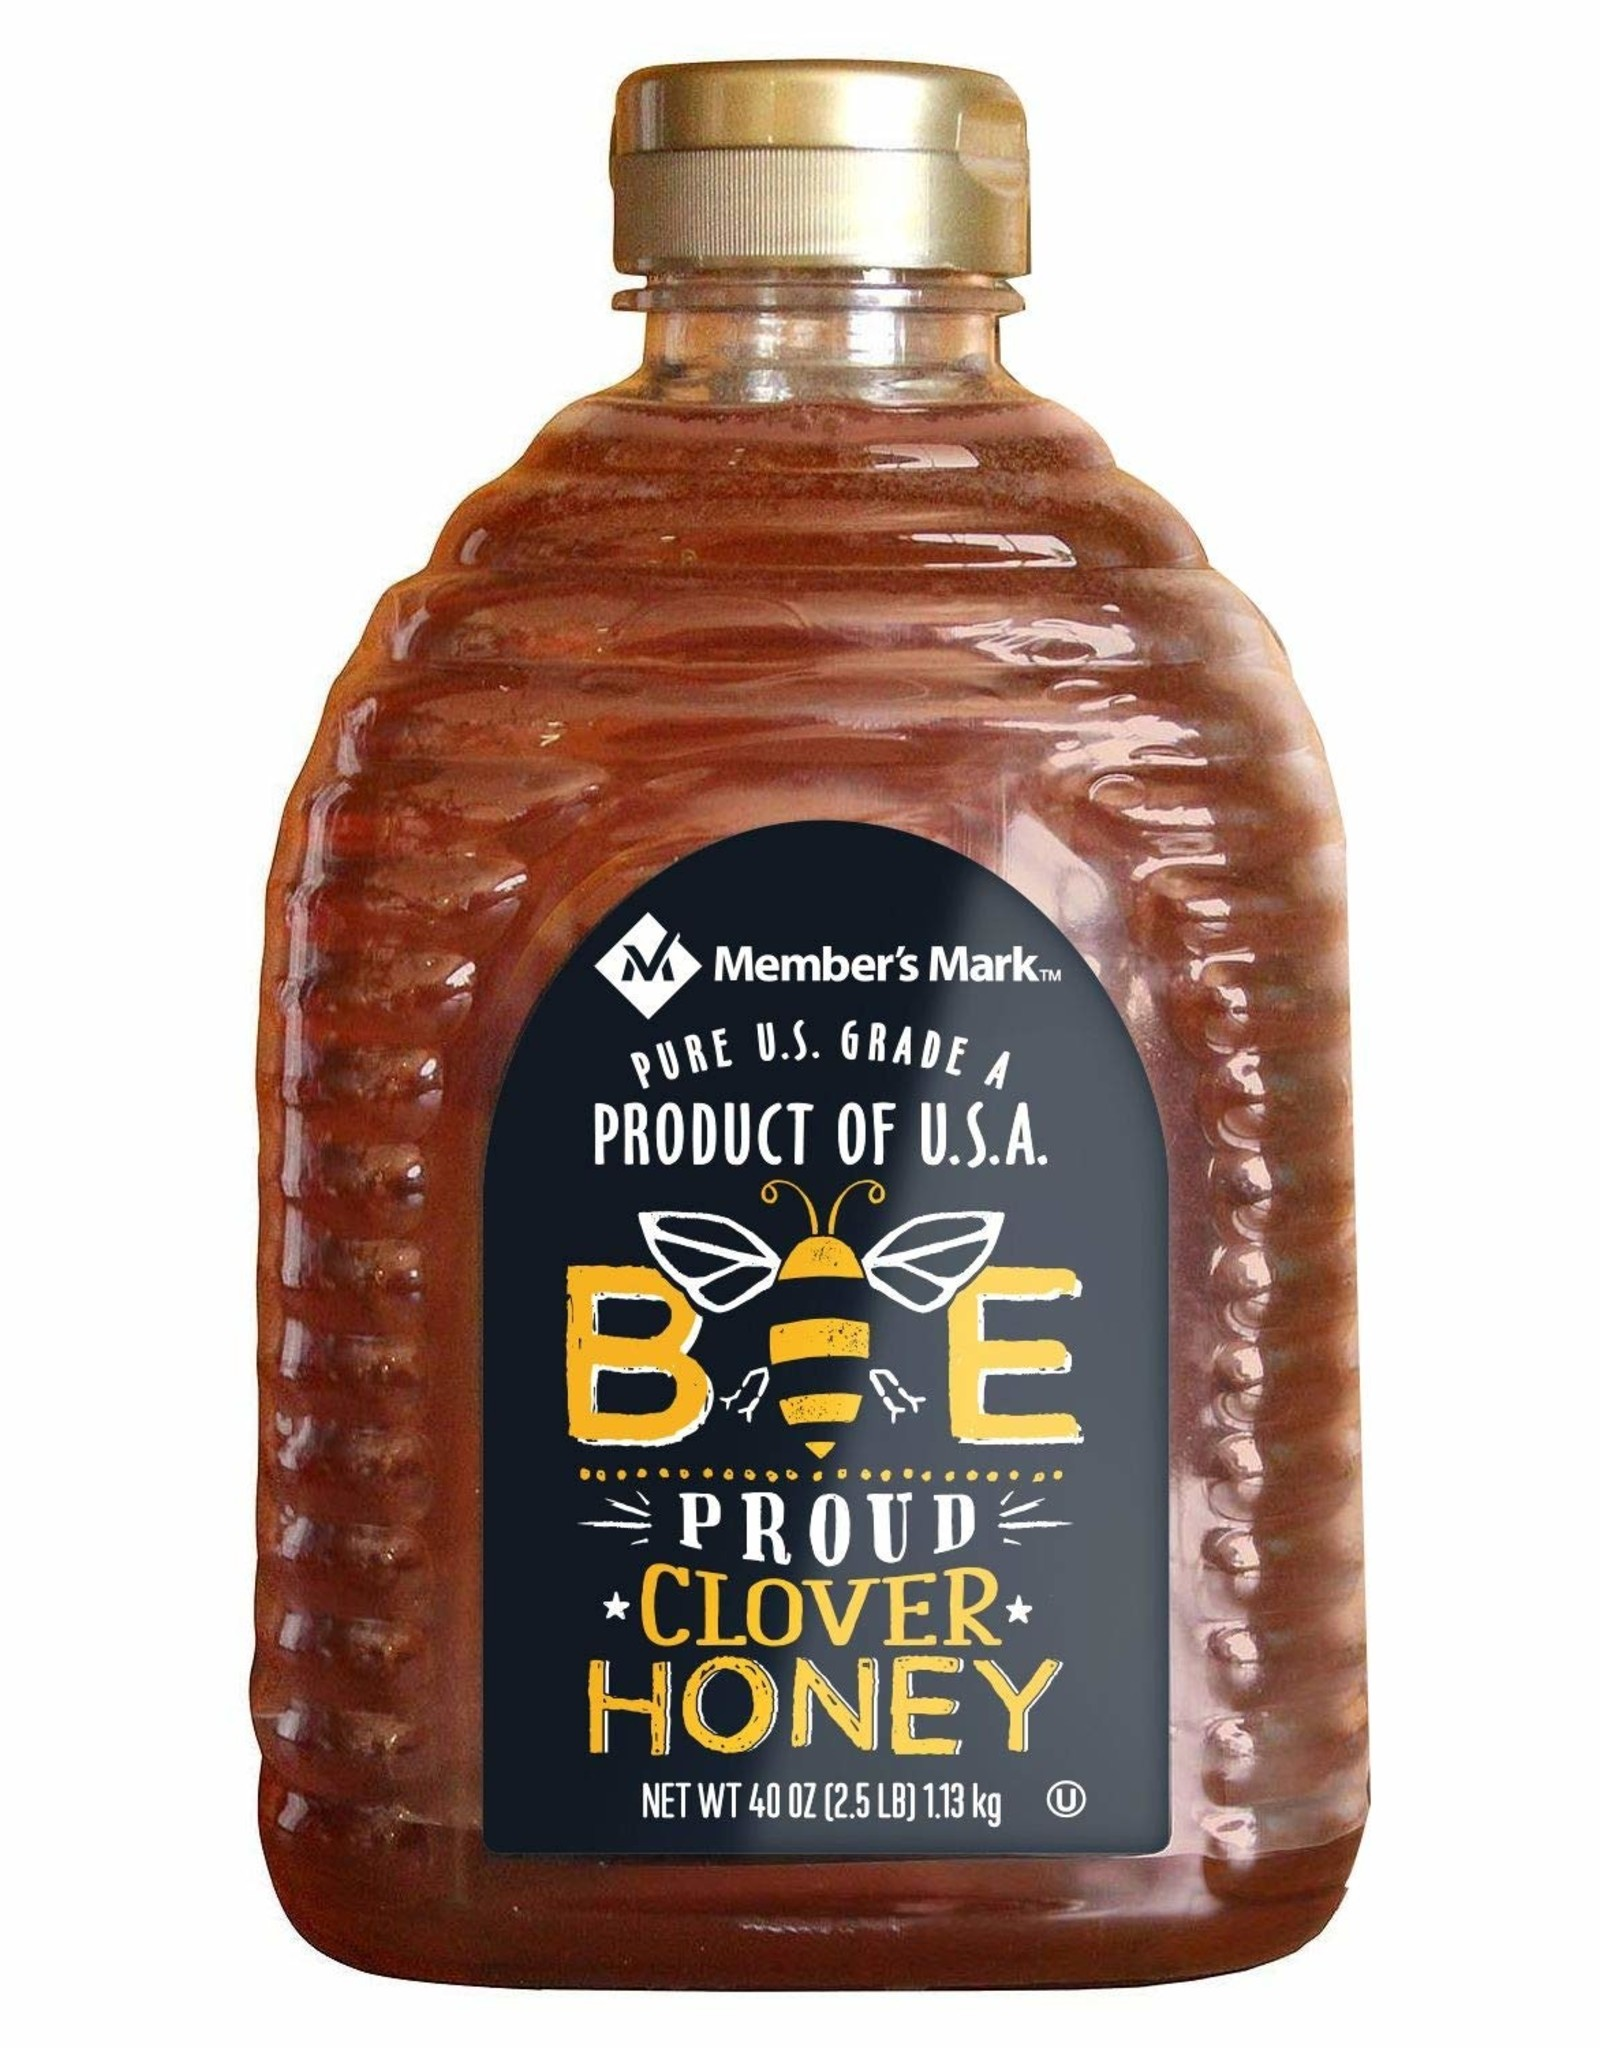 CLOVER HONEY- 2.5 lb.